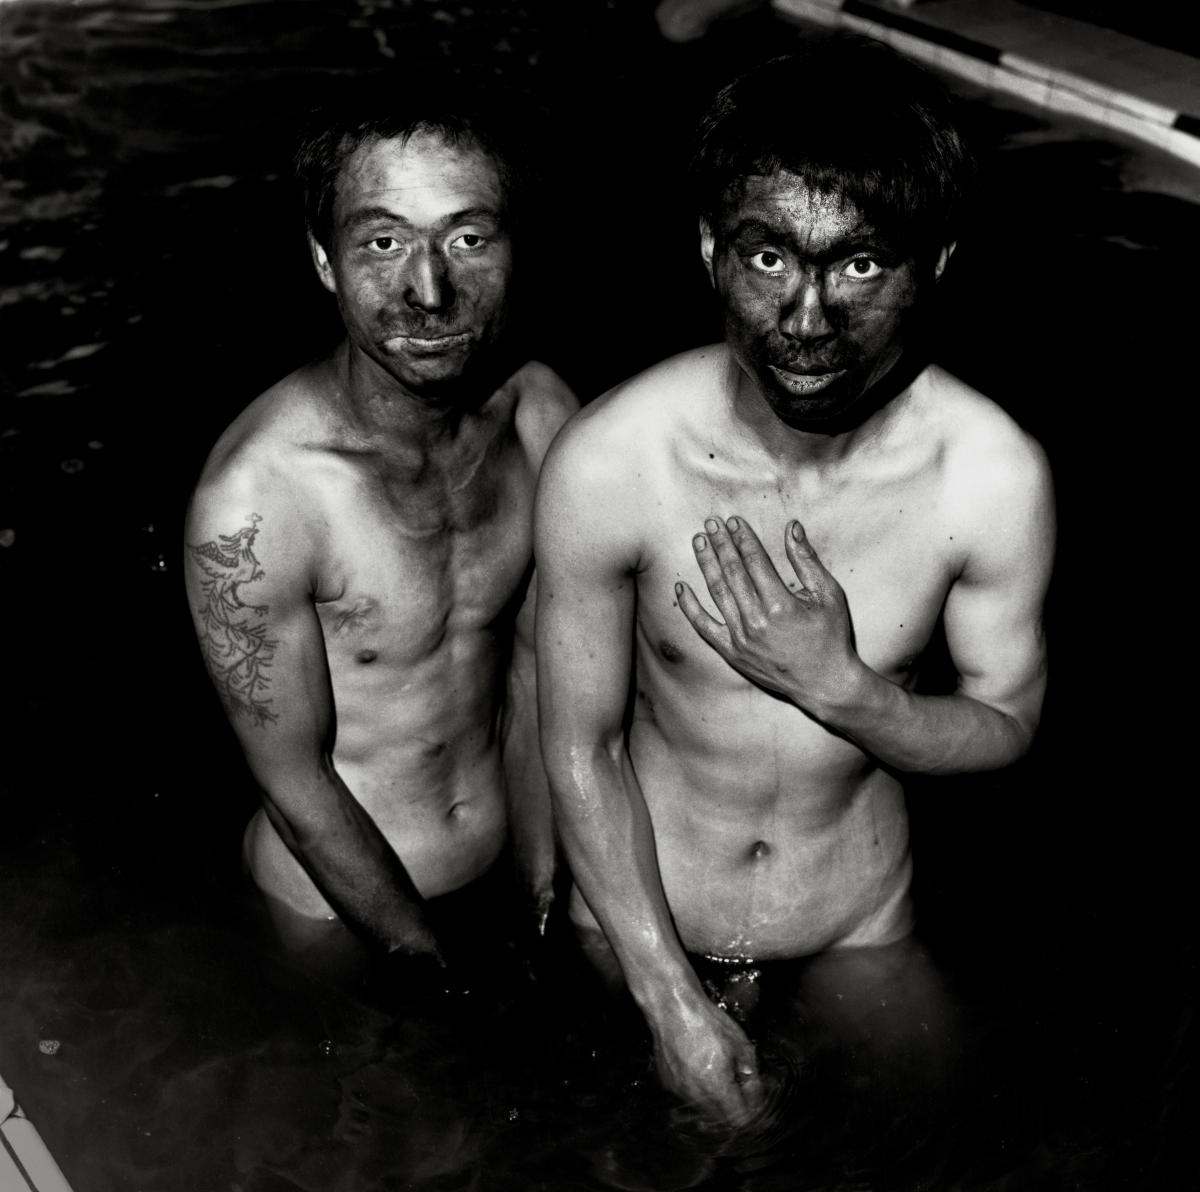 Liu Zheng (Chinese, born 1969), Two Miners, Datong, Shanxi Province, 1996, from the series The Chinese, 1994–2002. Gelatin silver print, 45.7 × 45.7 cm. Collection of Christopher E. Olofson, Class of 1992. © Liu Zheng, Courtesy Yossi Milo Gallery, New York